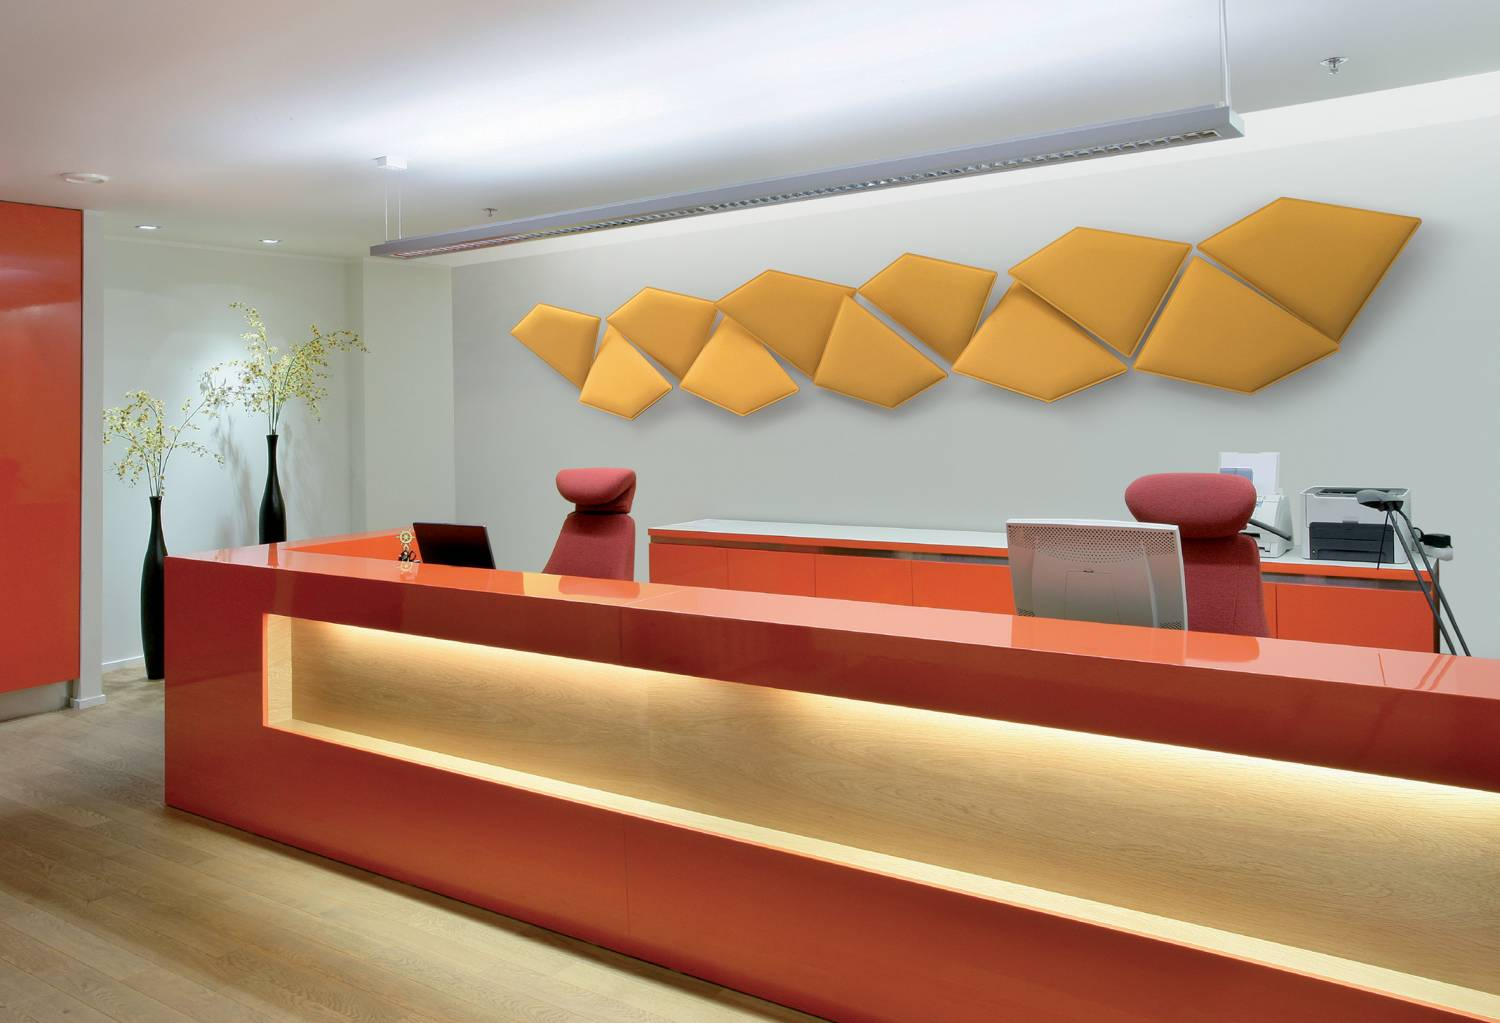 Flap-Acoustic-Sound-Absorbing-Tiles-in-Reception-Area